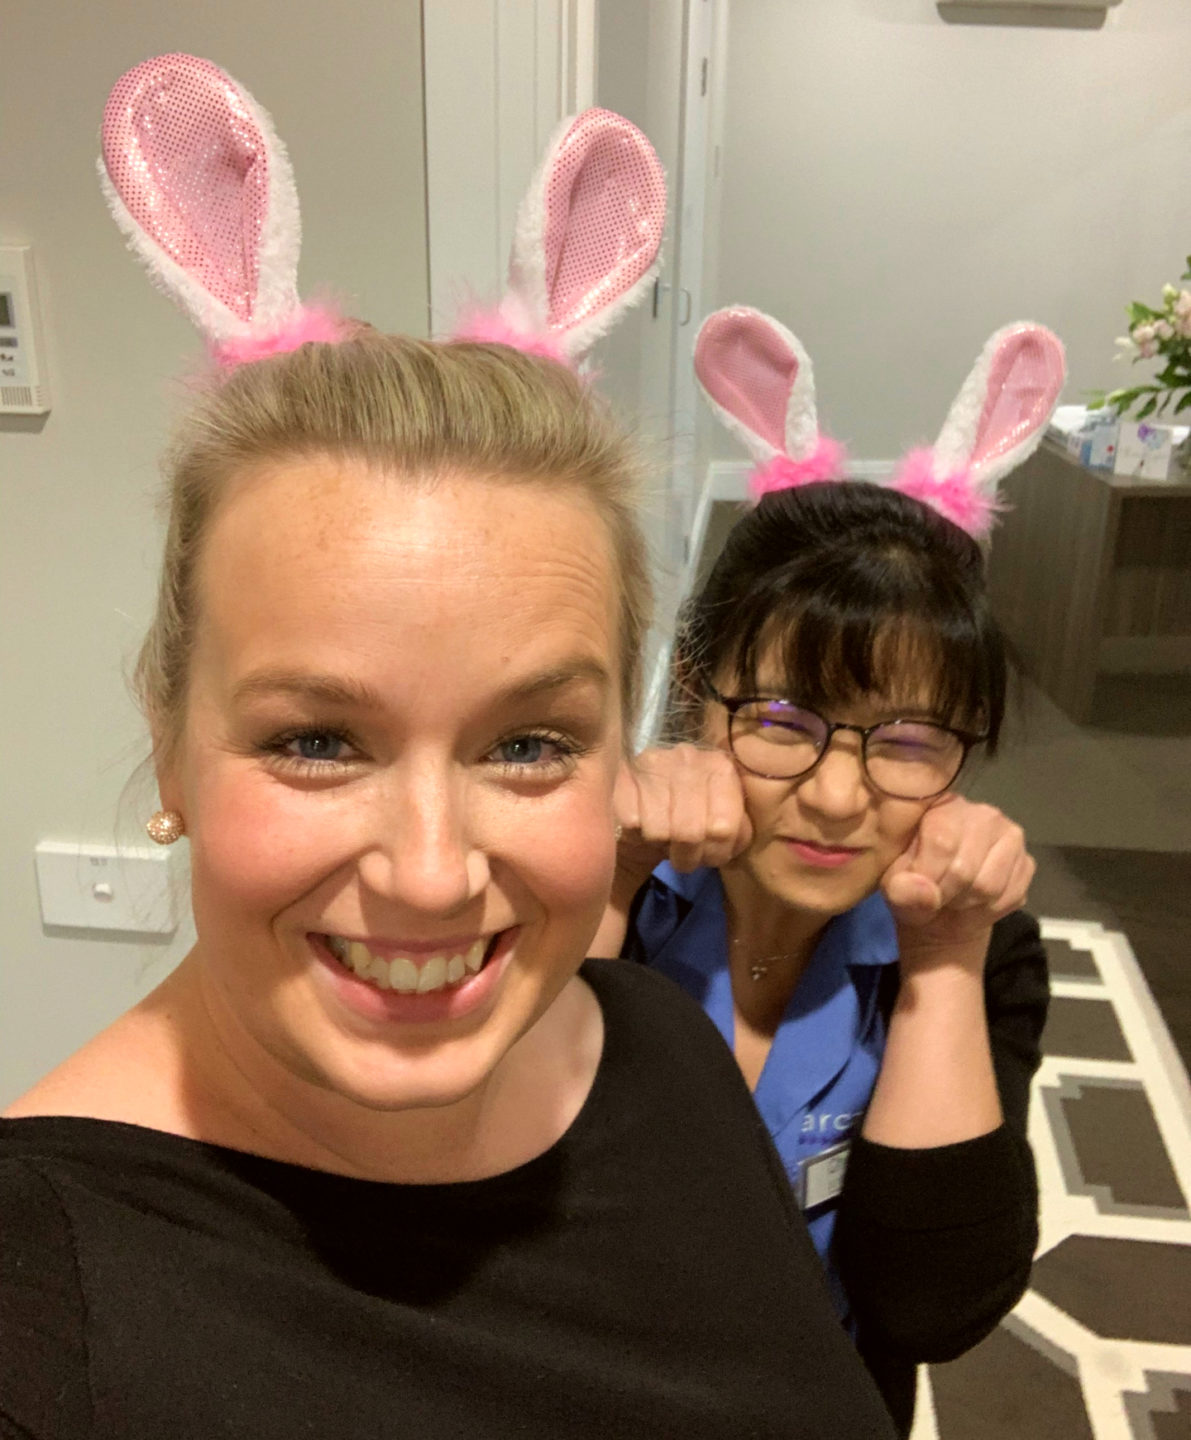 Arcare Aged Care Parkview Easter 2020